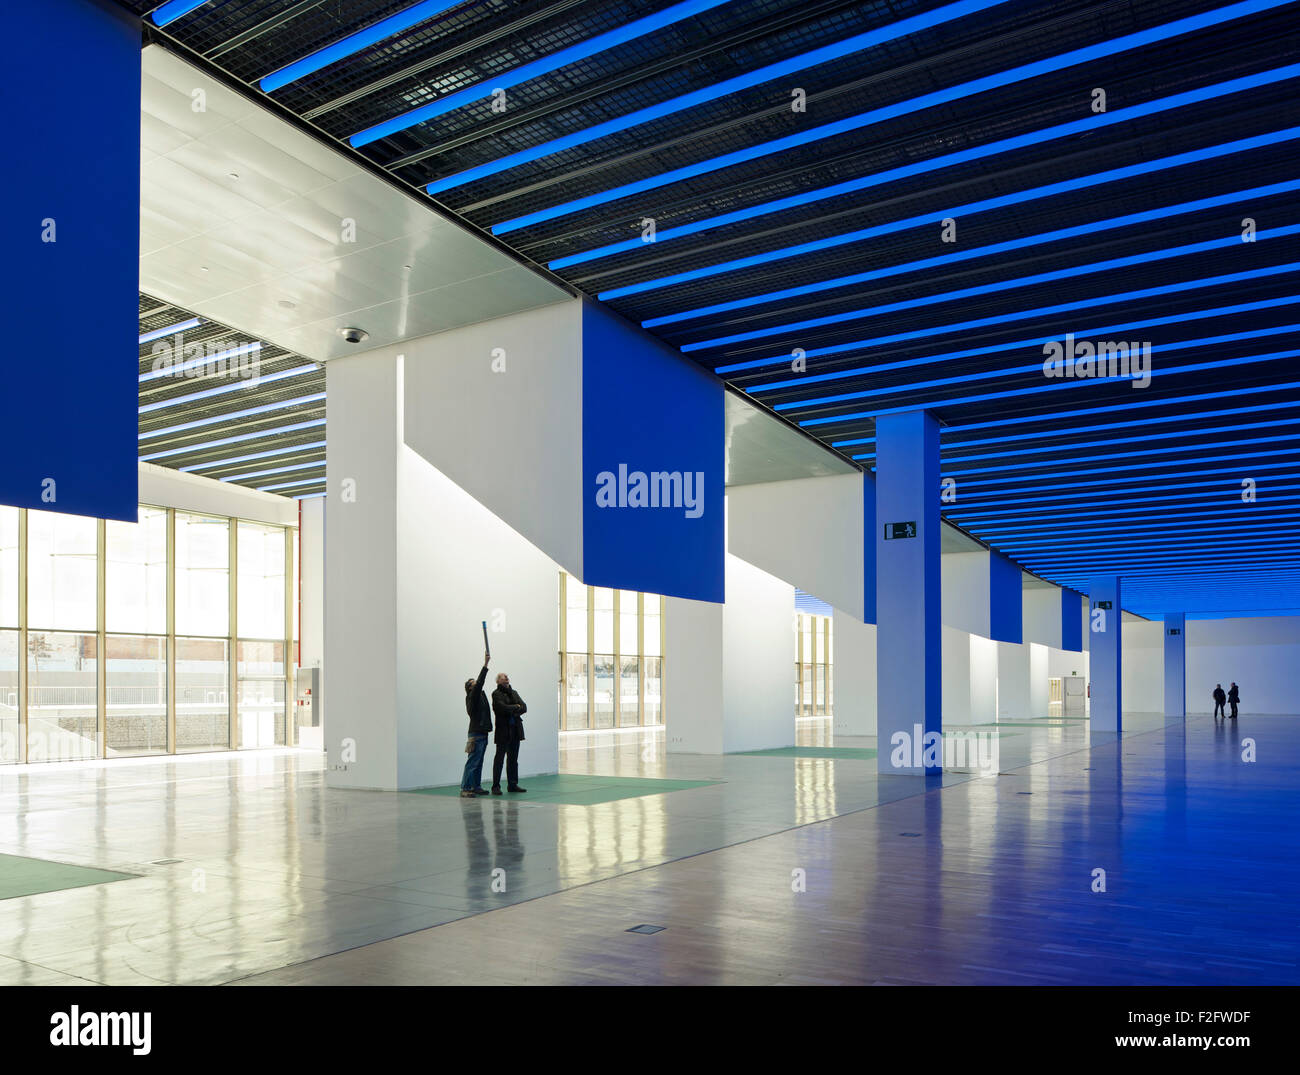 ... Skylight Columns And Ground Floor Gallery In Blue Light With  Silhouetted Figures. Museu Del Disseny